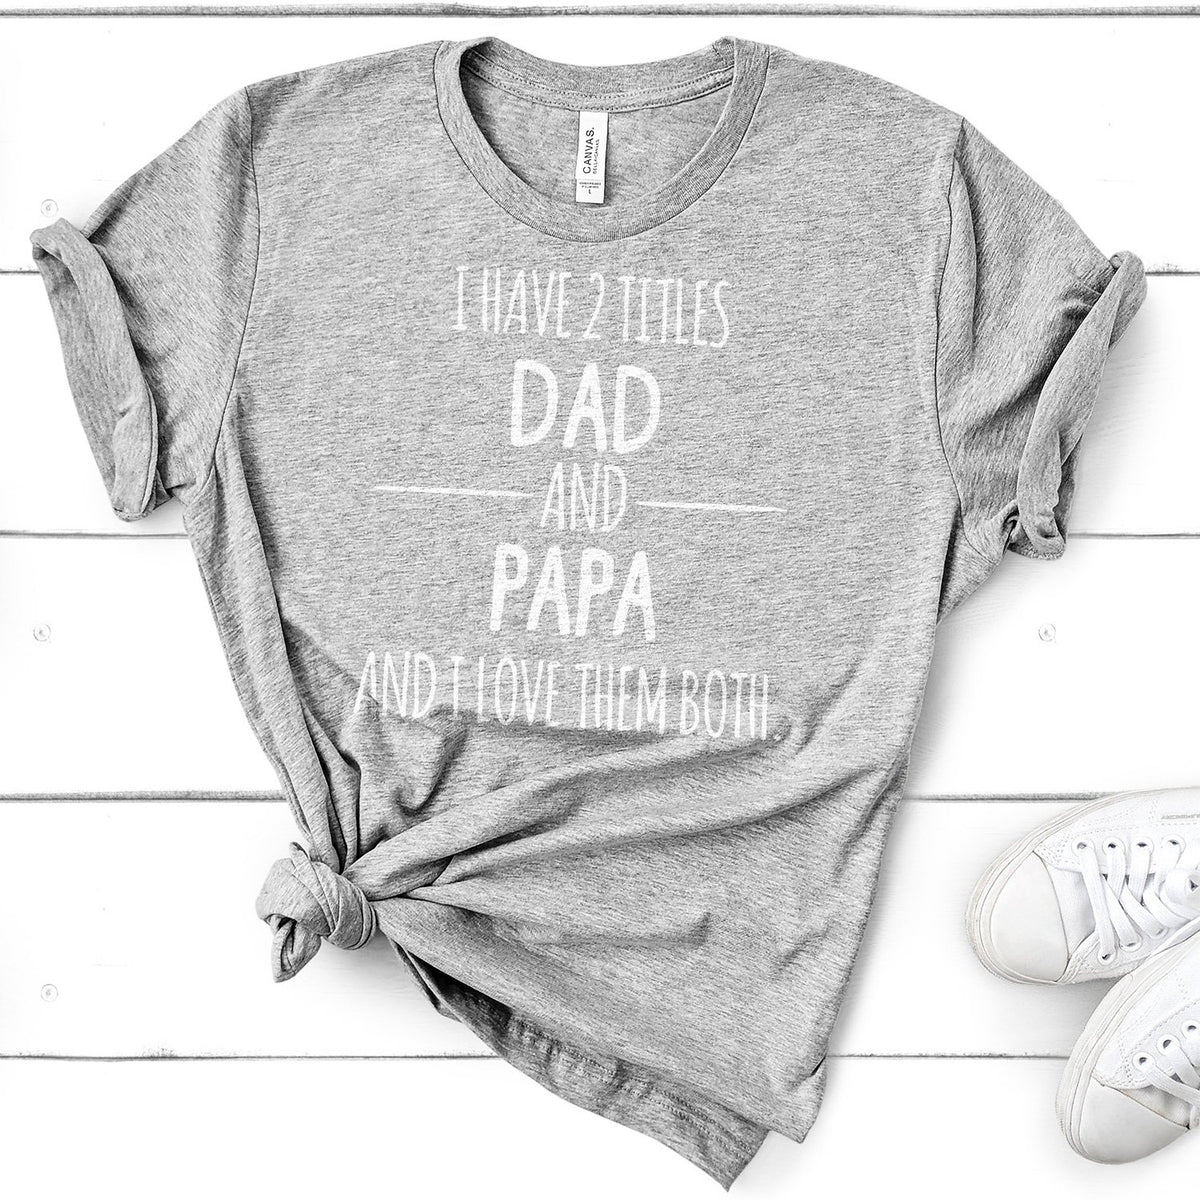 I Have 2 Titles Dad and Papa and I Love Them Both - Short Sleeve Tee Shirt